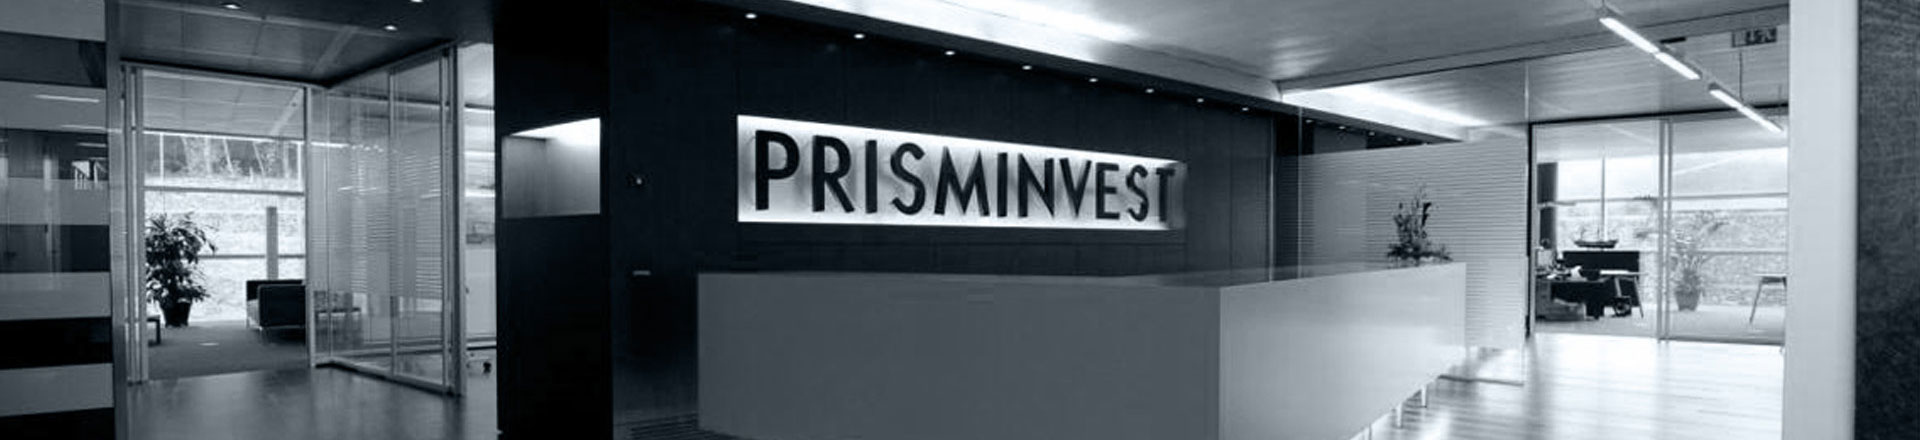 Prisiminvest WNG Agence Digitale